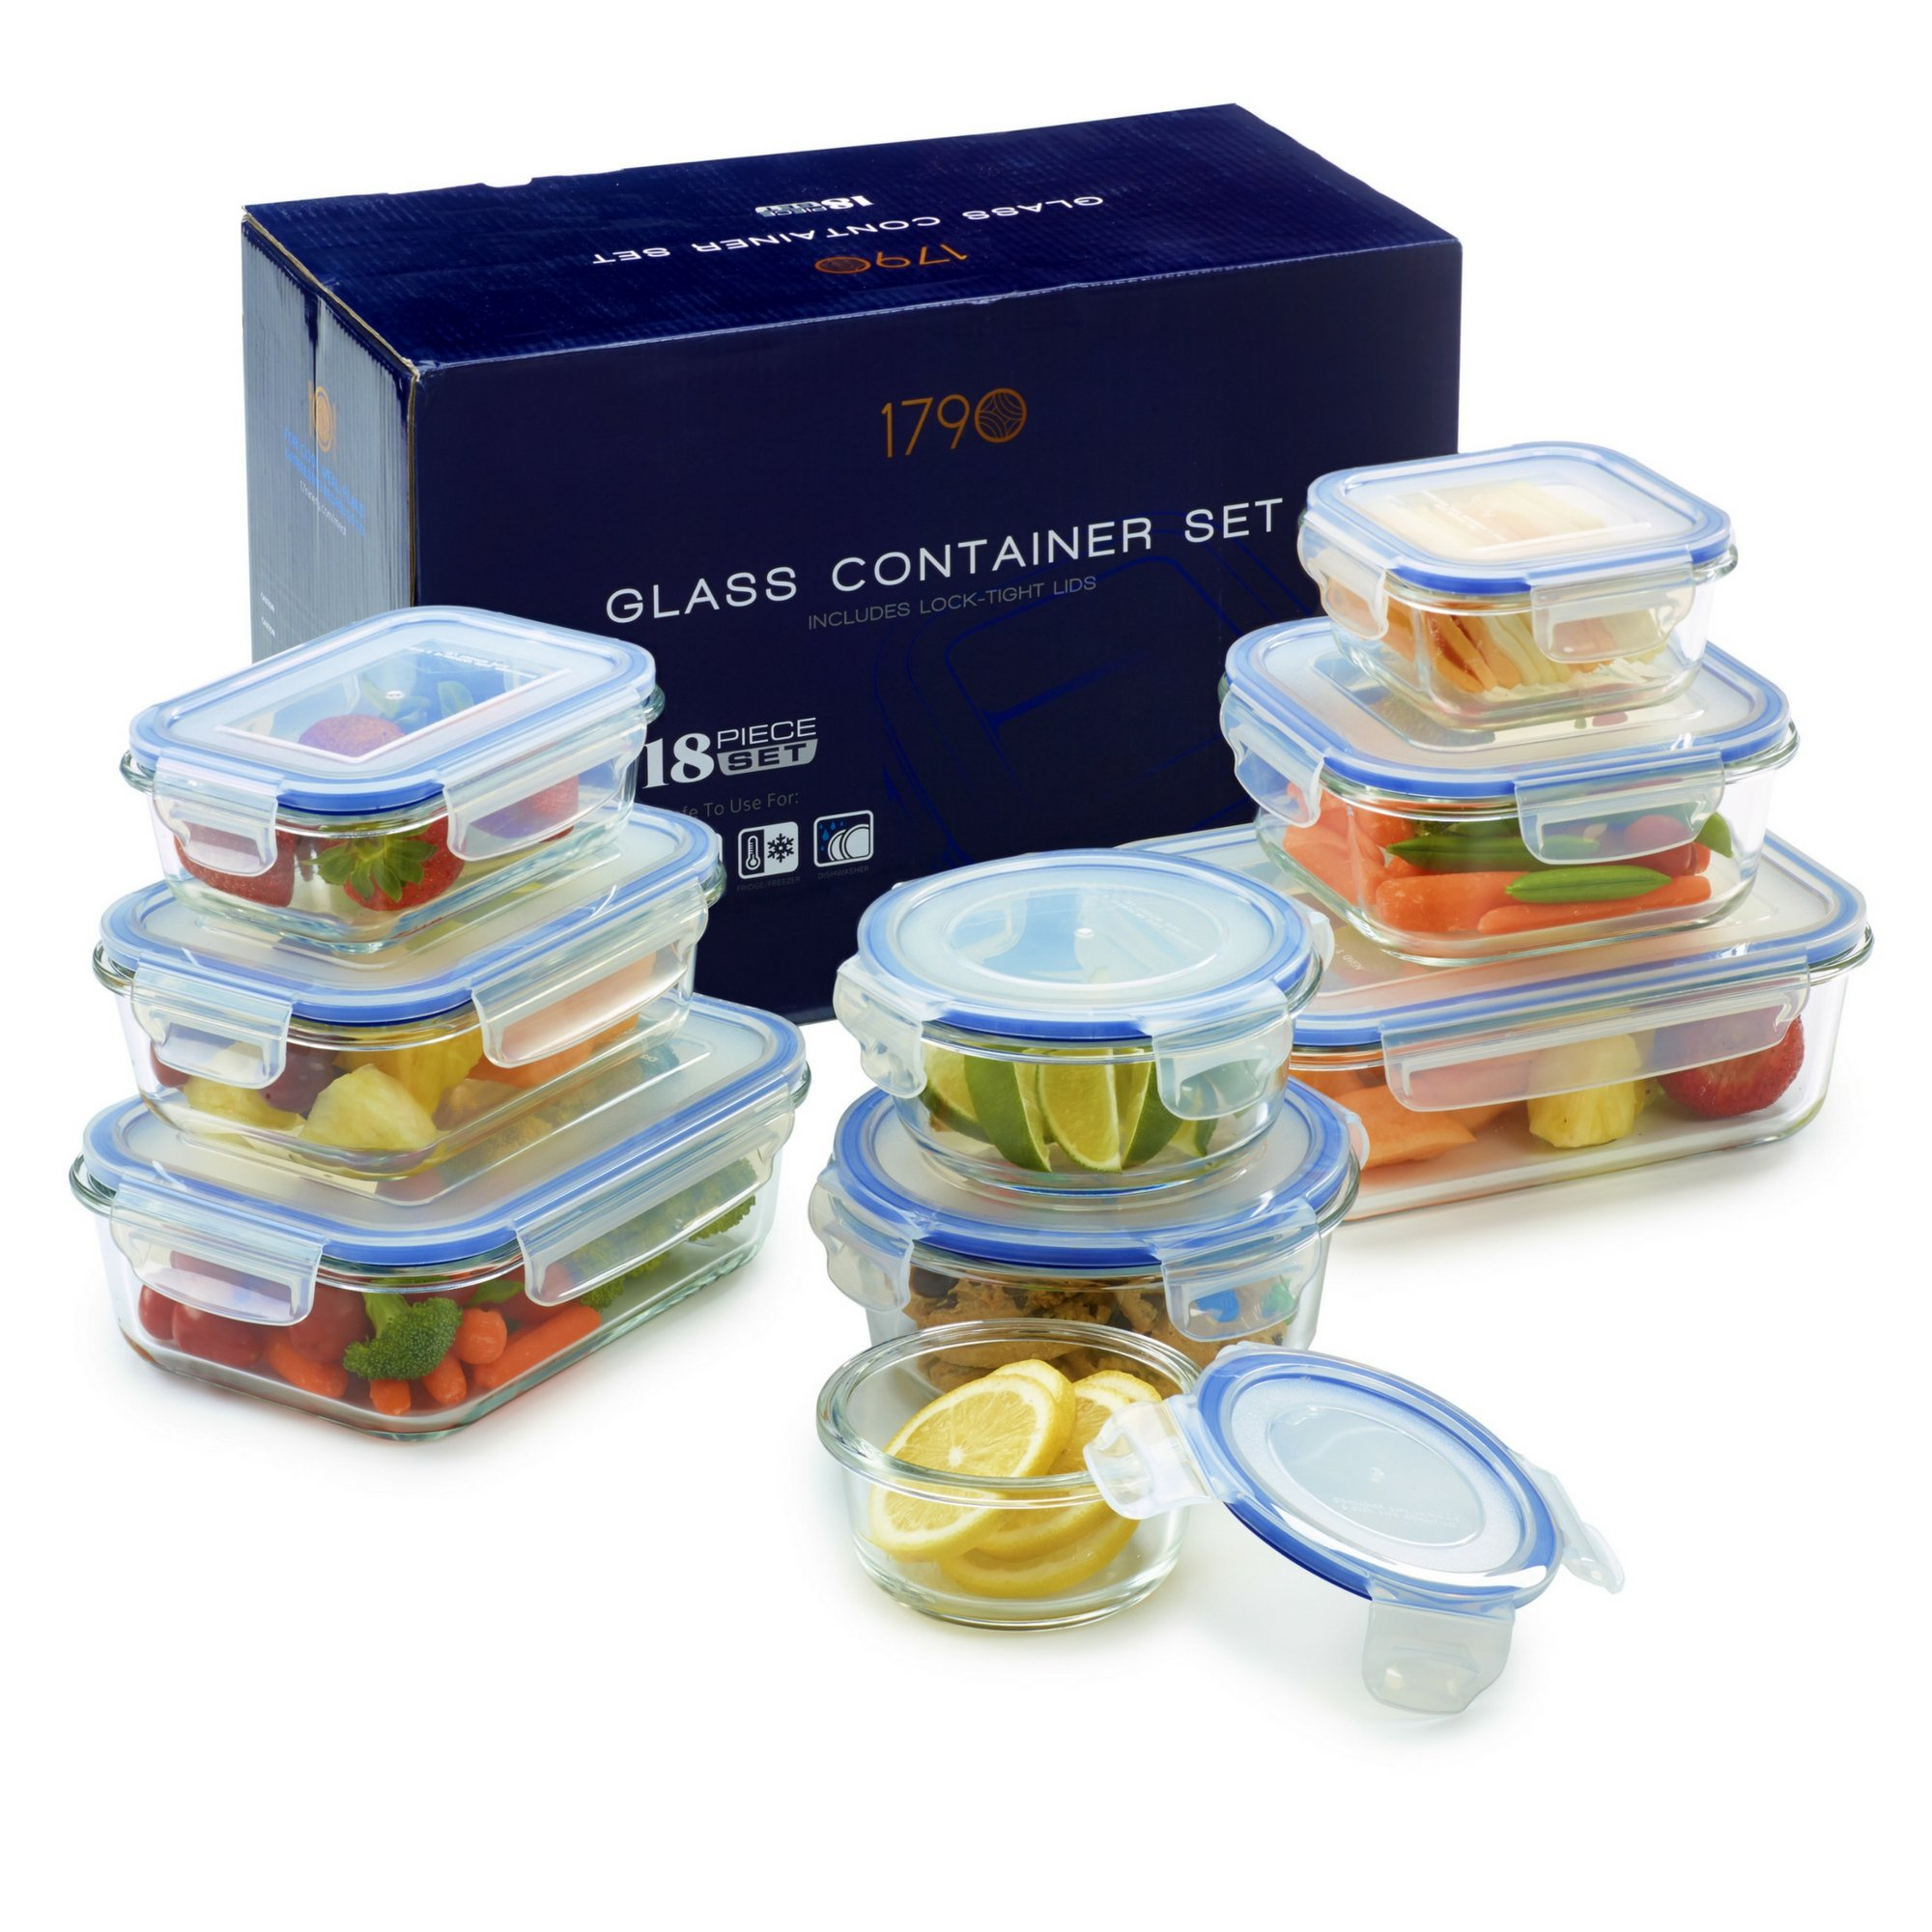 18 Piece Glass Food Storage Container Set - BPA Free - Use for Home, Kitchen and Restaurant - Snap On Lids Keep Food Fresh with Airtight Seal Safe for Dishwasher by 1790 (Image #2)